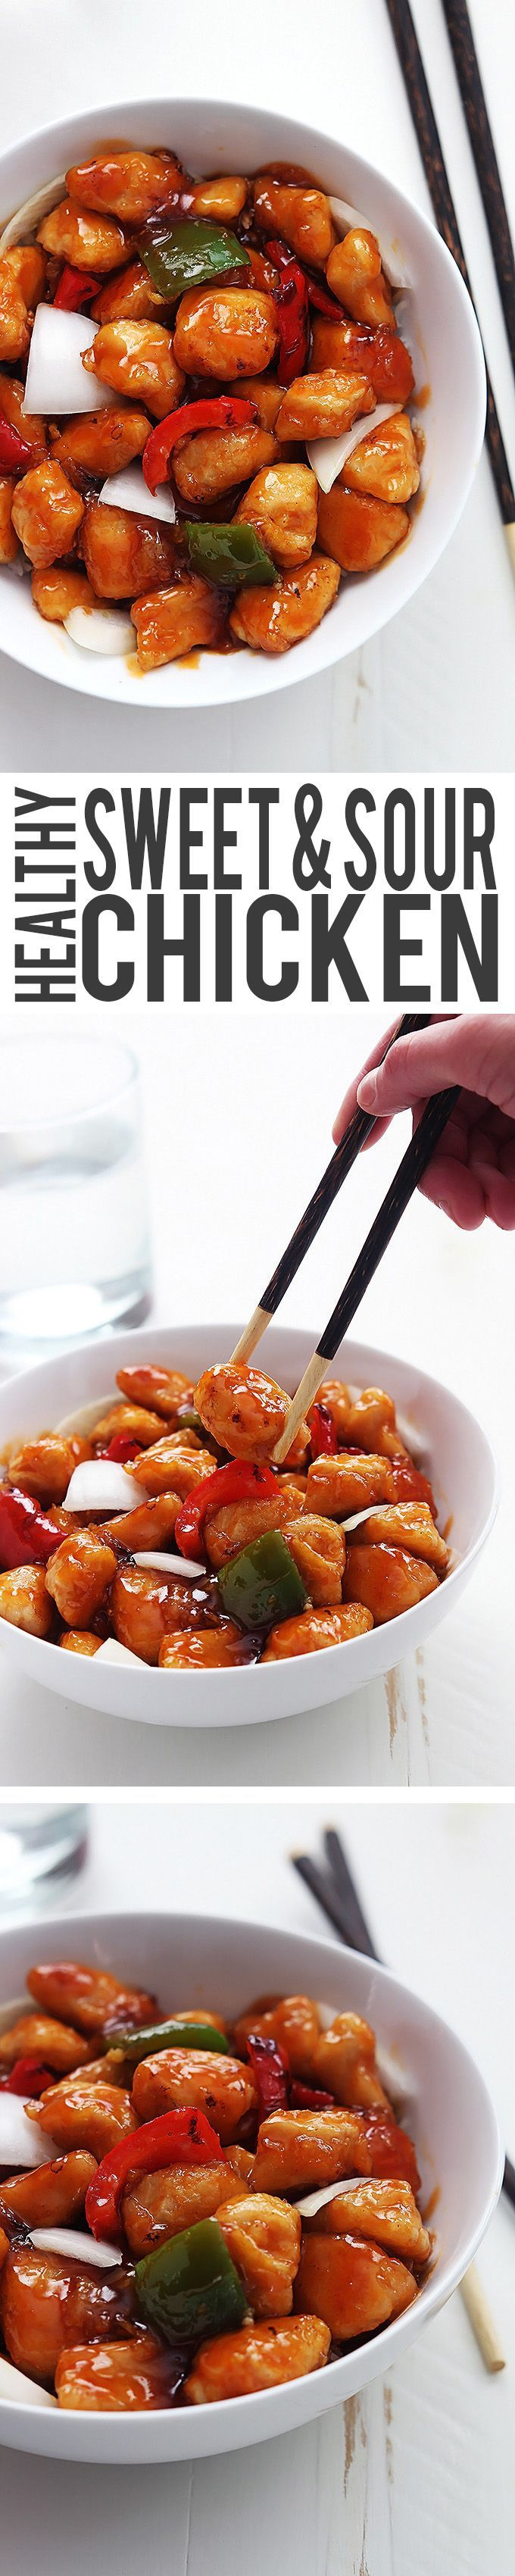 Healthy Sweet & Sour Chicken - it's easy, better tasting than takeout, and ready in just 30 minutes. // Chicken: https://www.zayconfoods.com/campaign/27